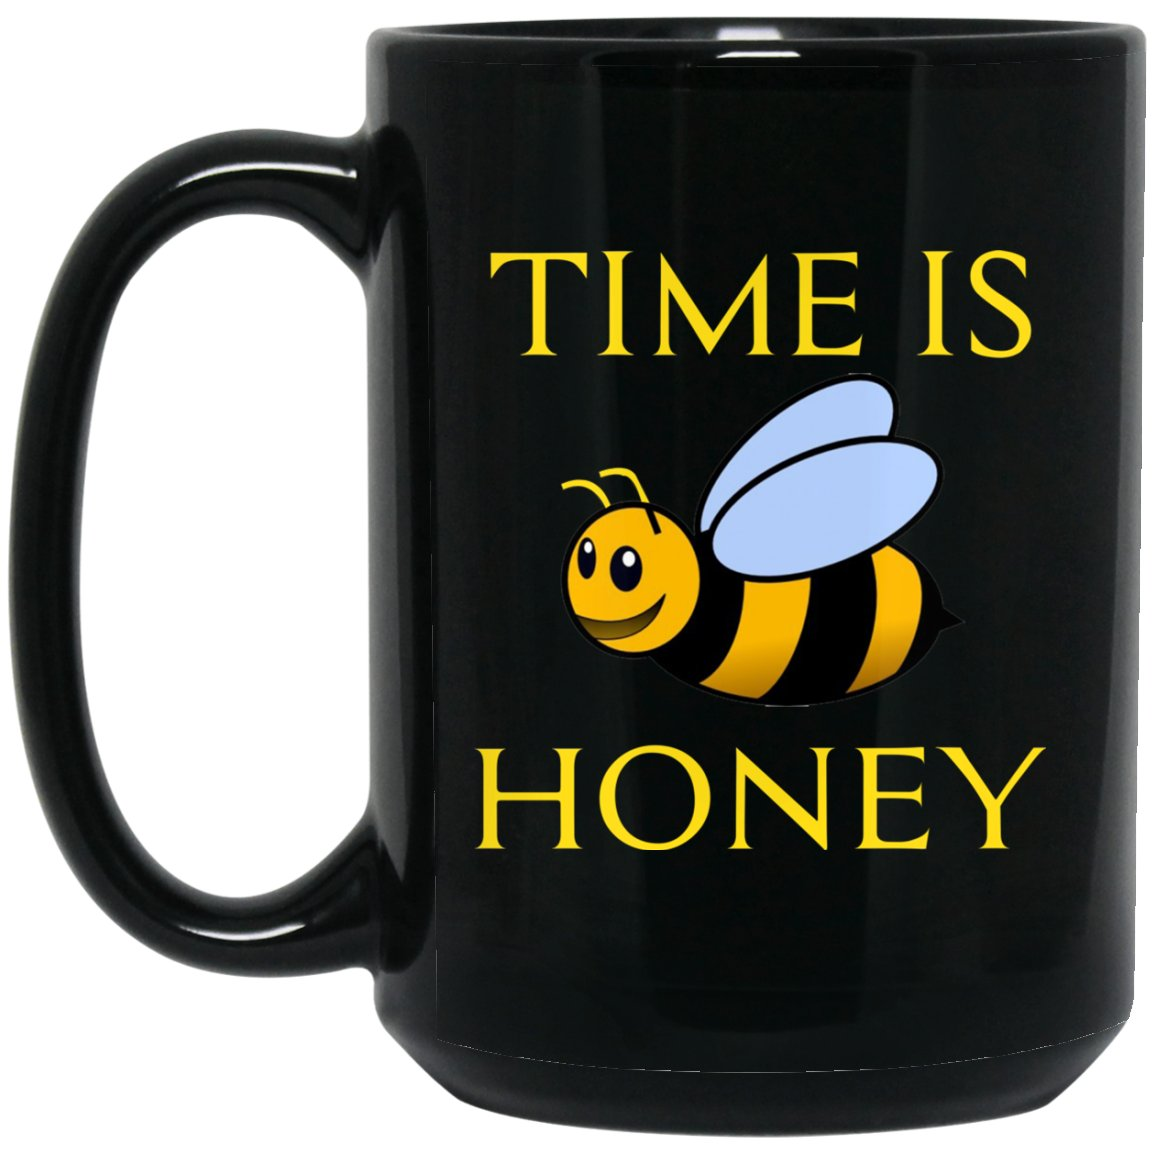 Funny Beekeeping Gift - Time is honey Large Black Mug